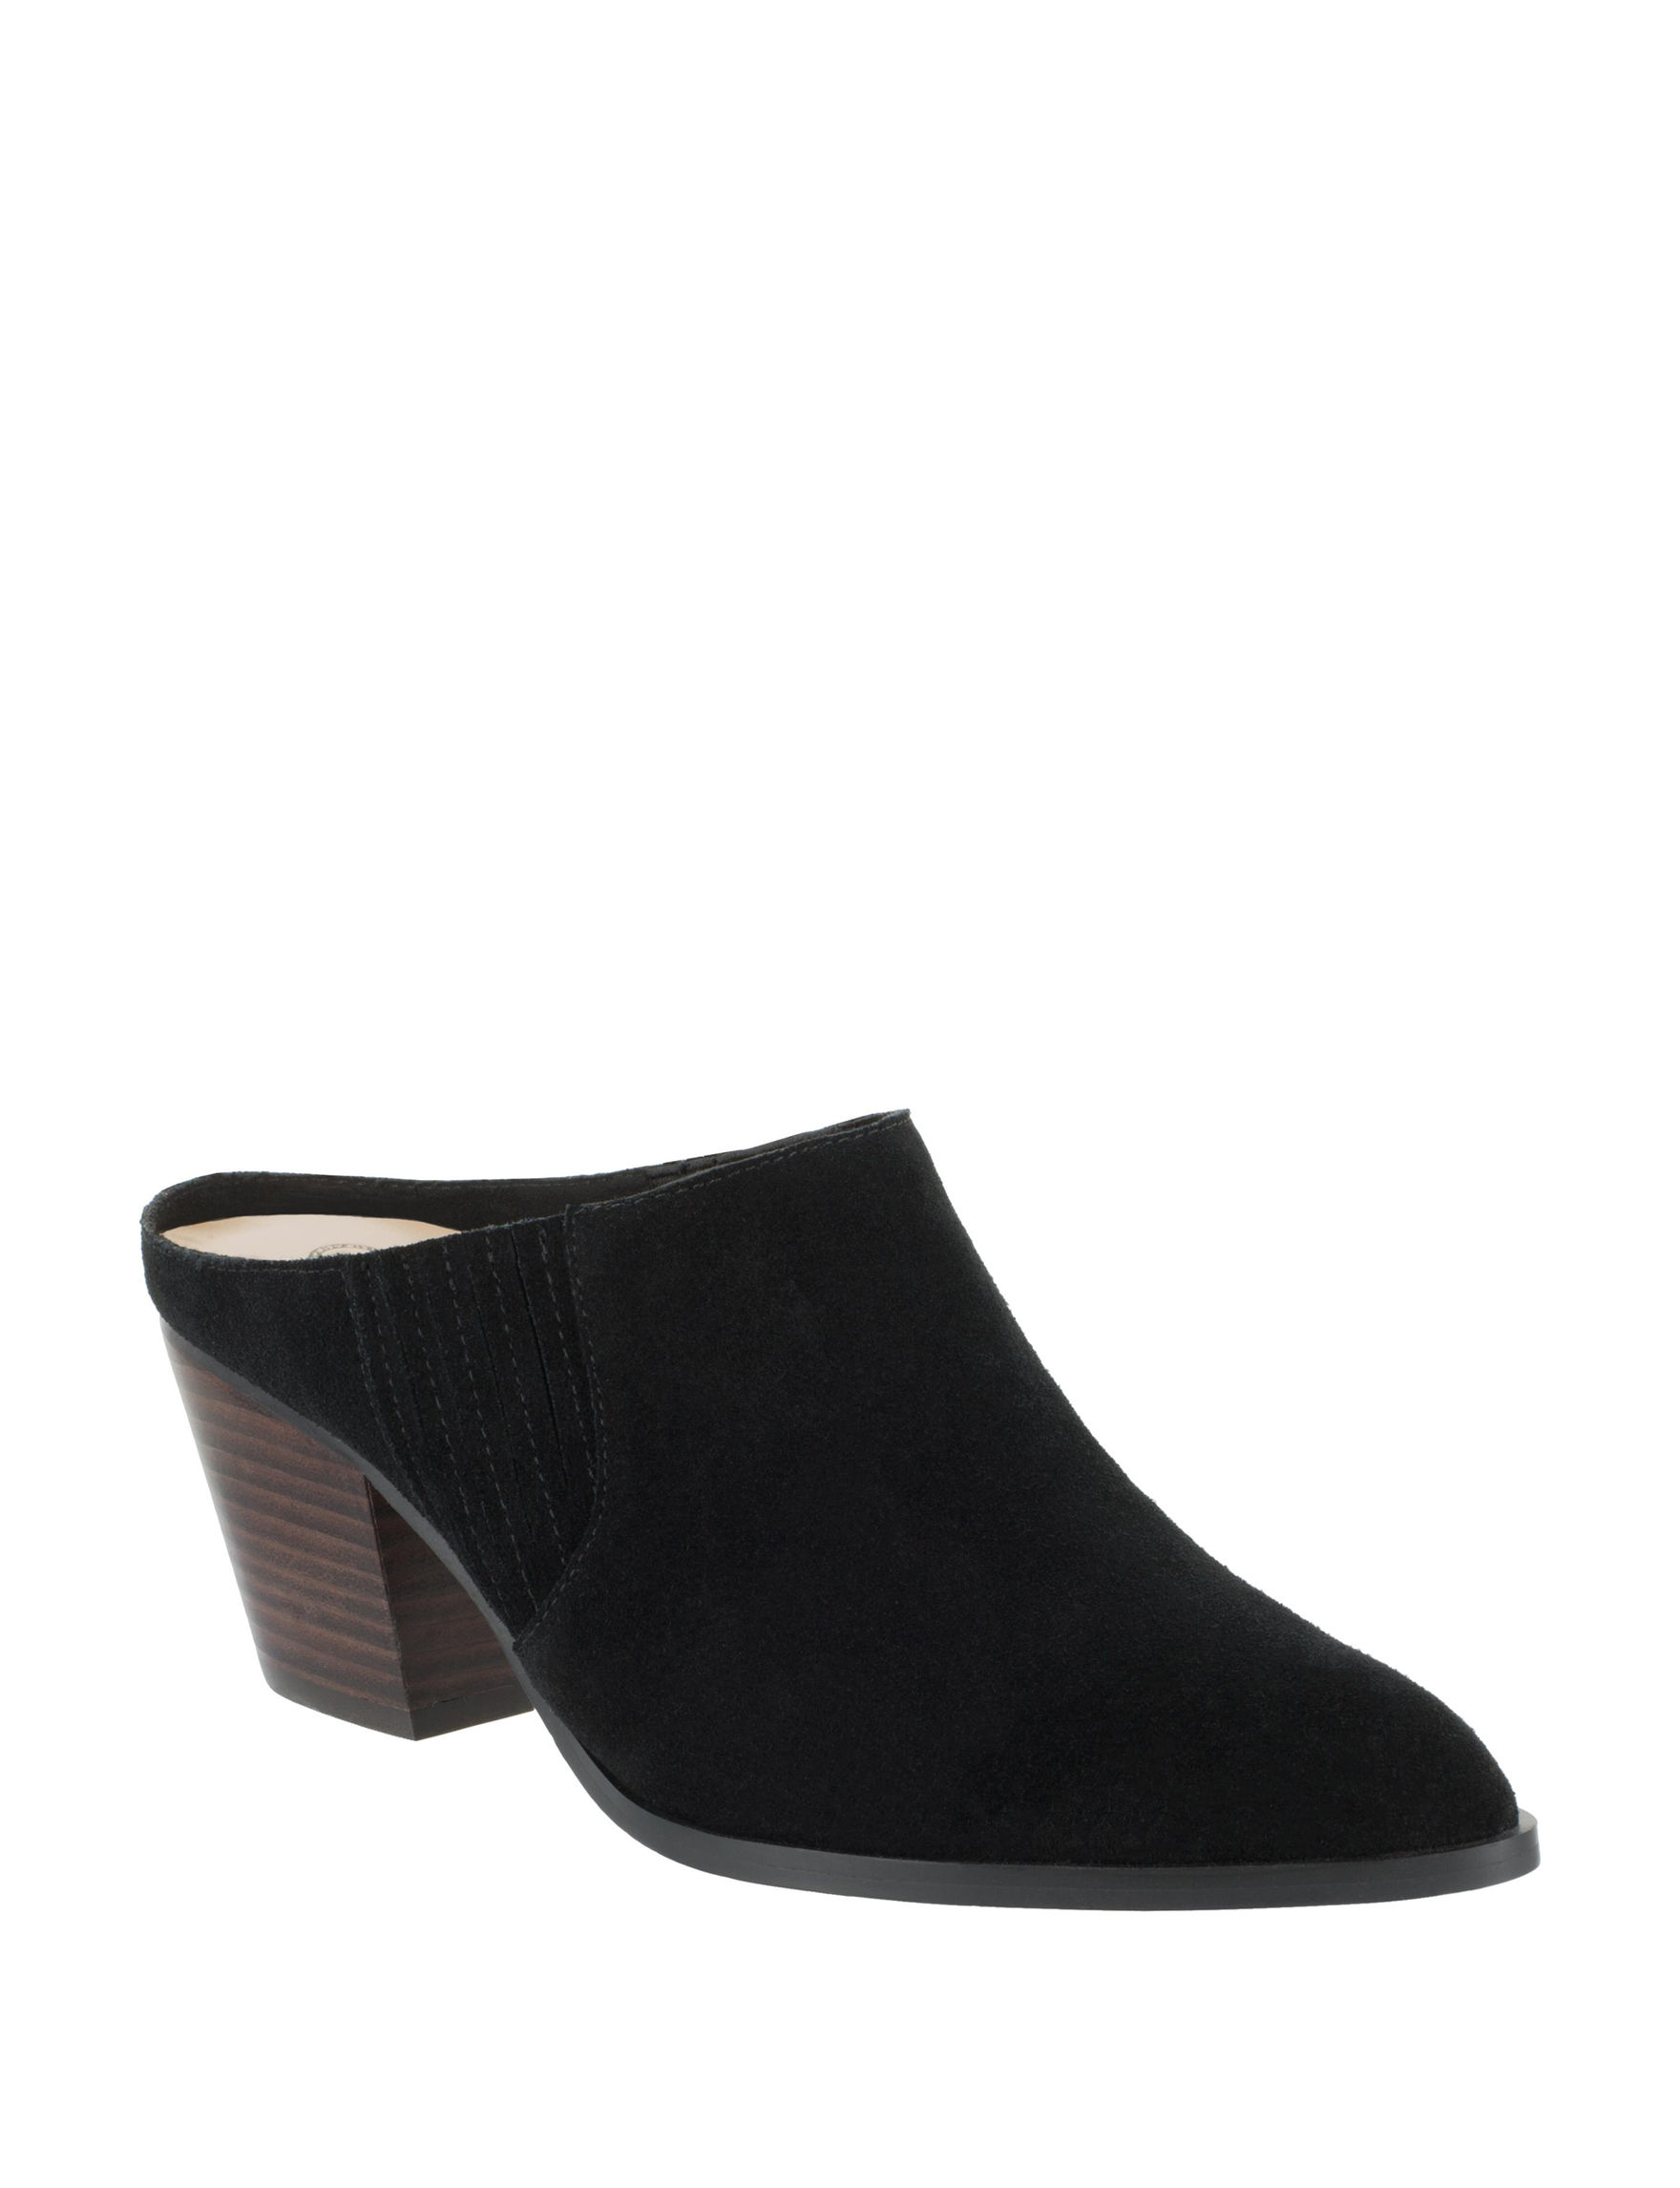 Bella Vita Black Mules